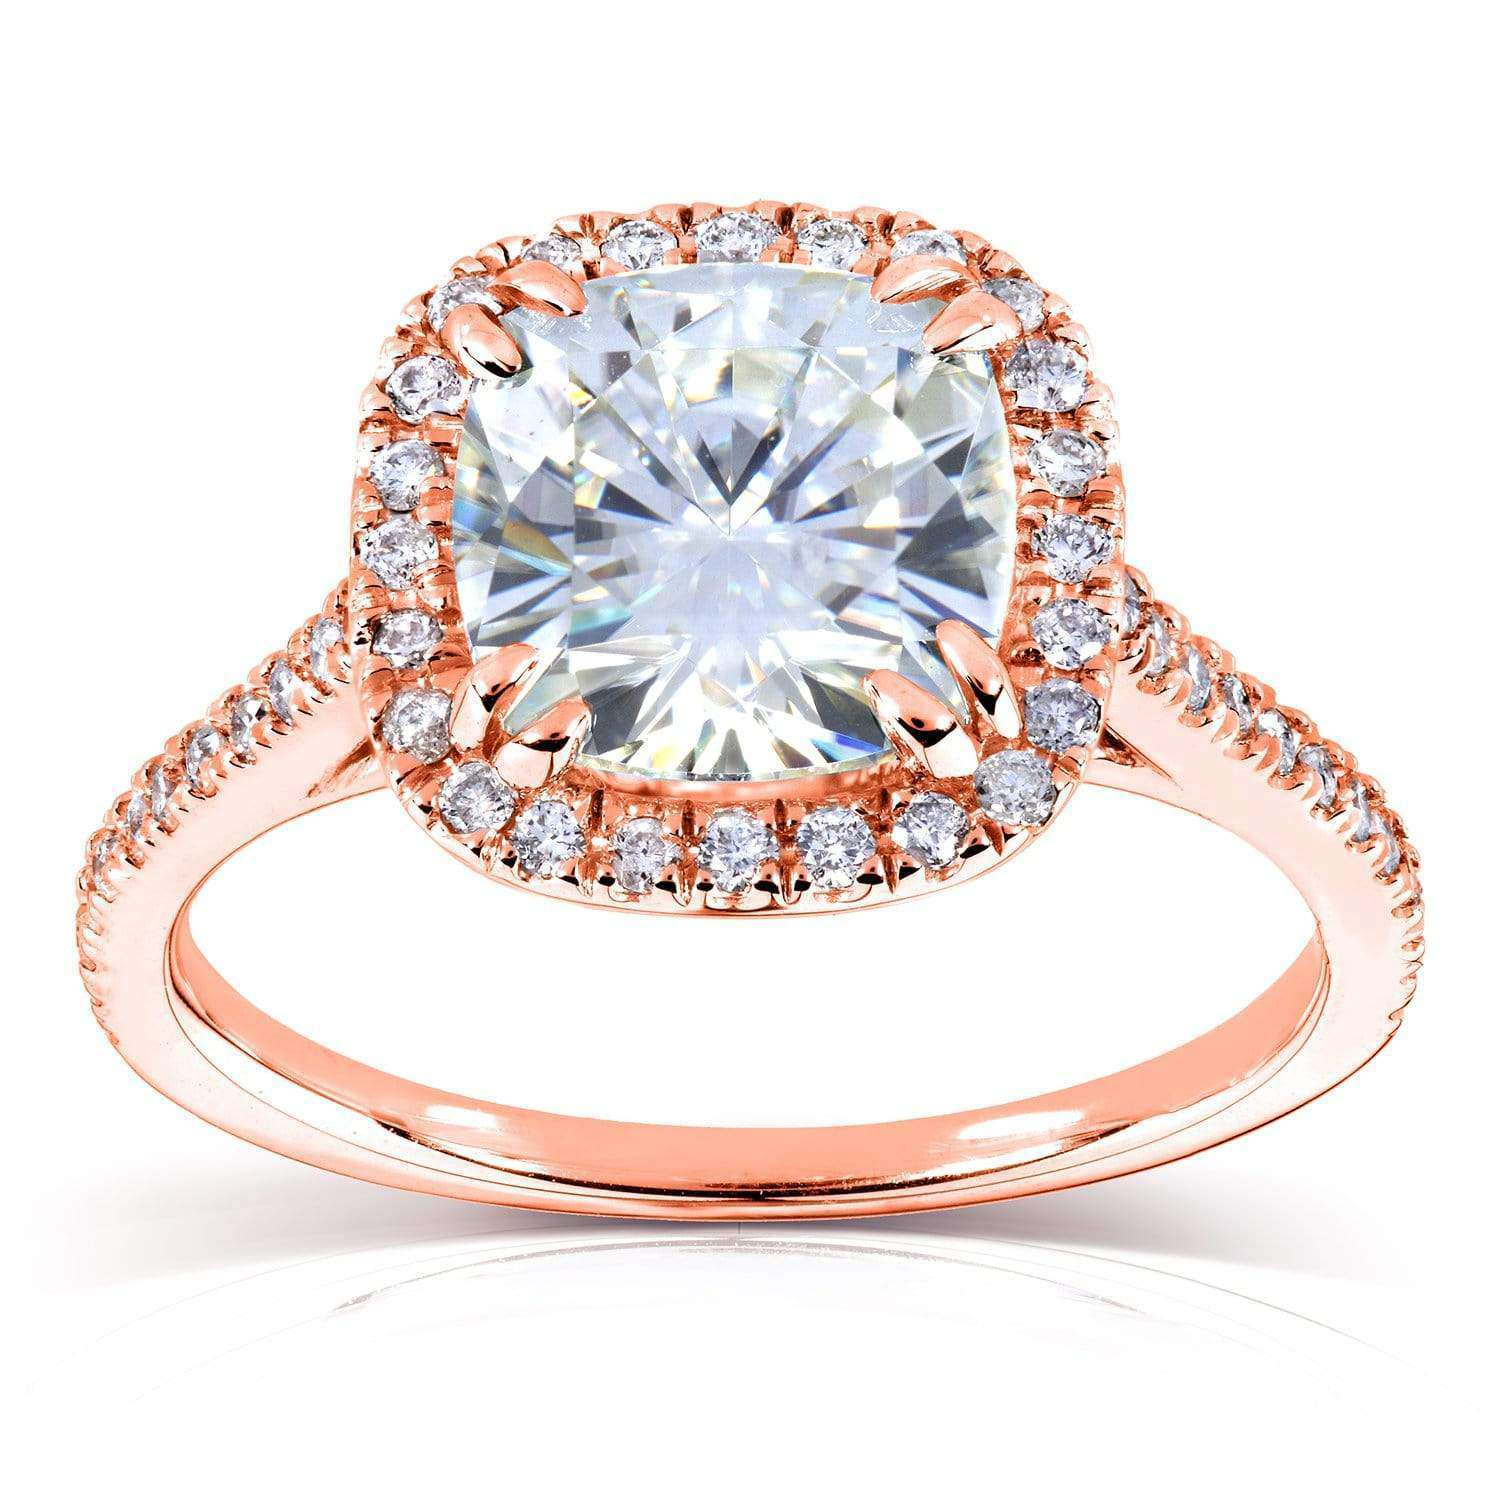 Coupons Cushion Moissanite and Diamond Halo Cathedral Engagement Ring 2 1/4 CTW 14k Rose Gold (7.5 mm) - 9.5